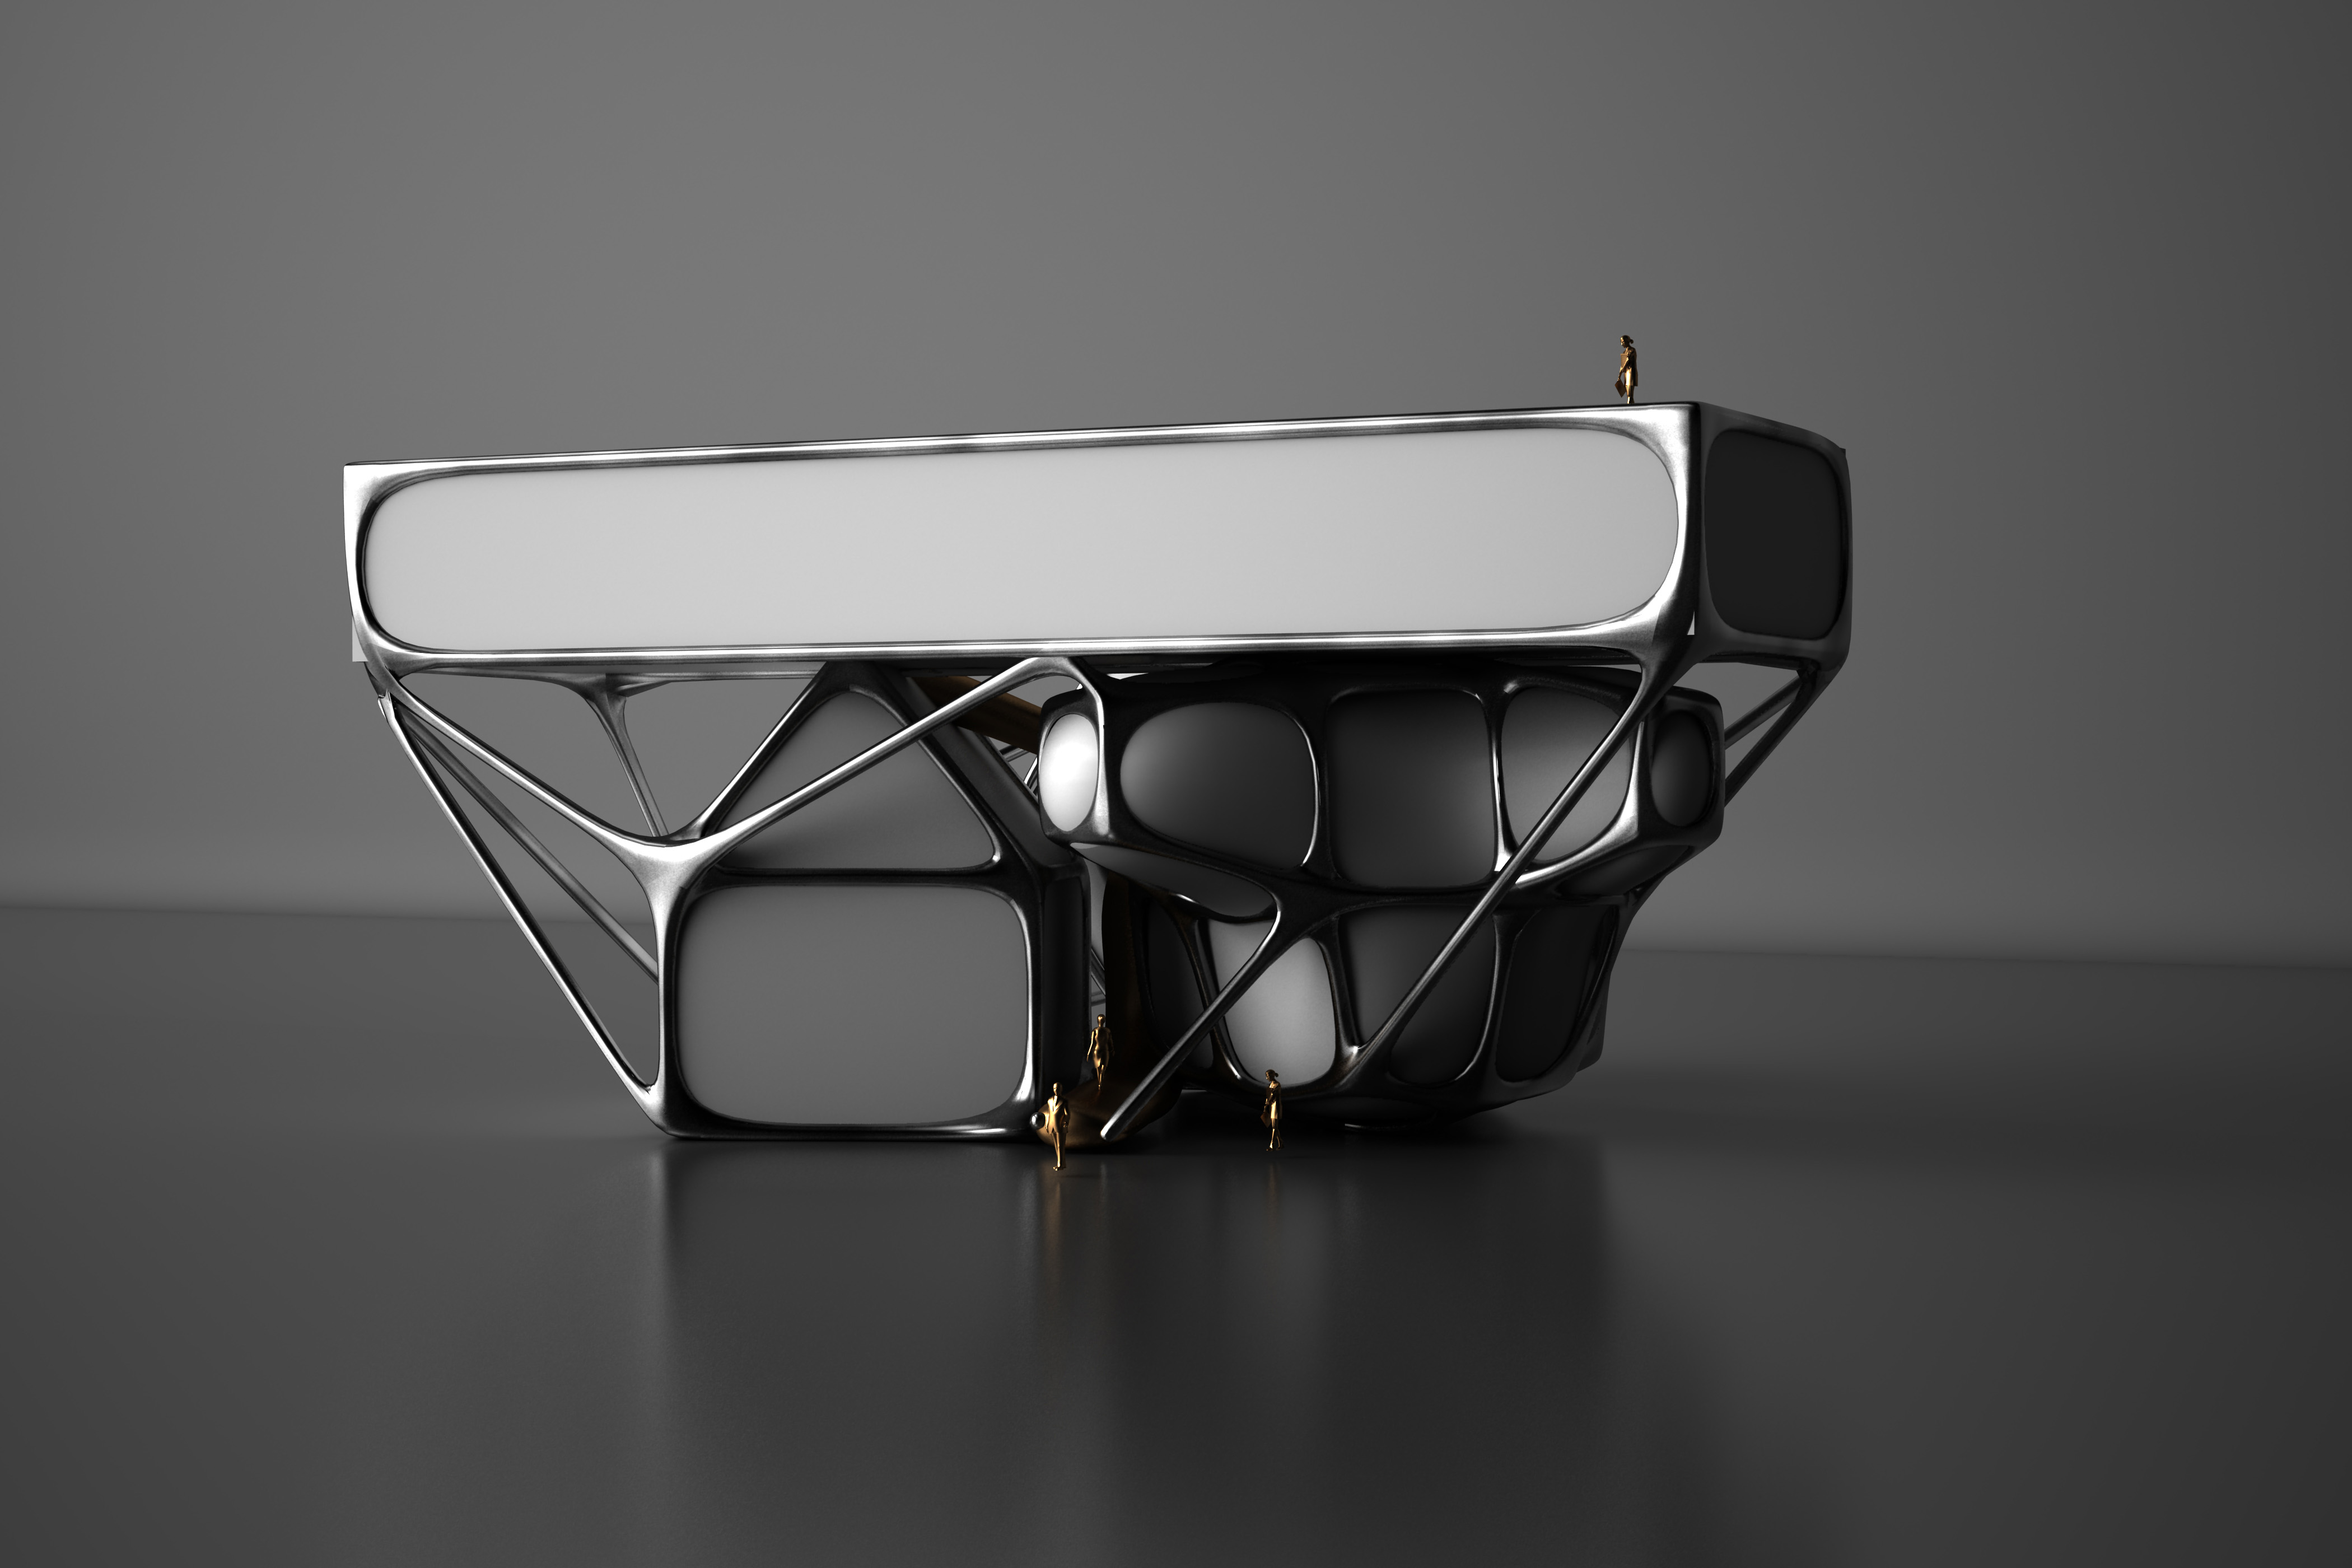 ANYTHING_2 Impressionnant De Table Transformable Concept